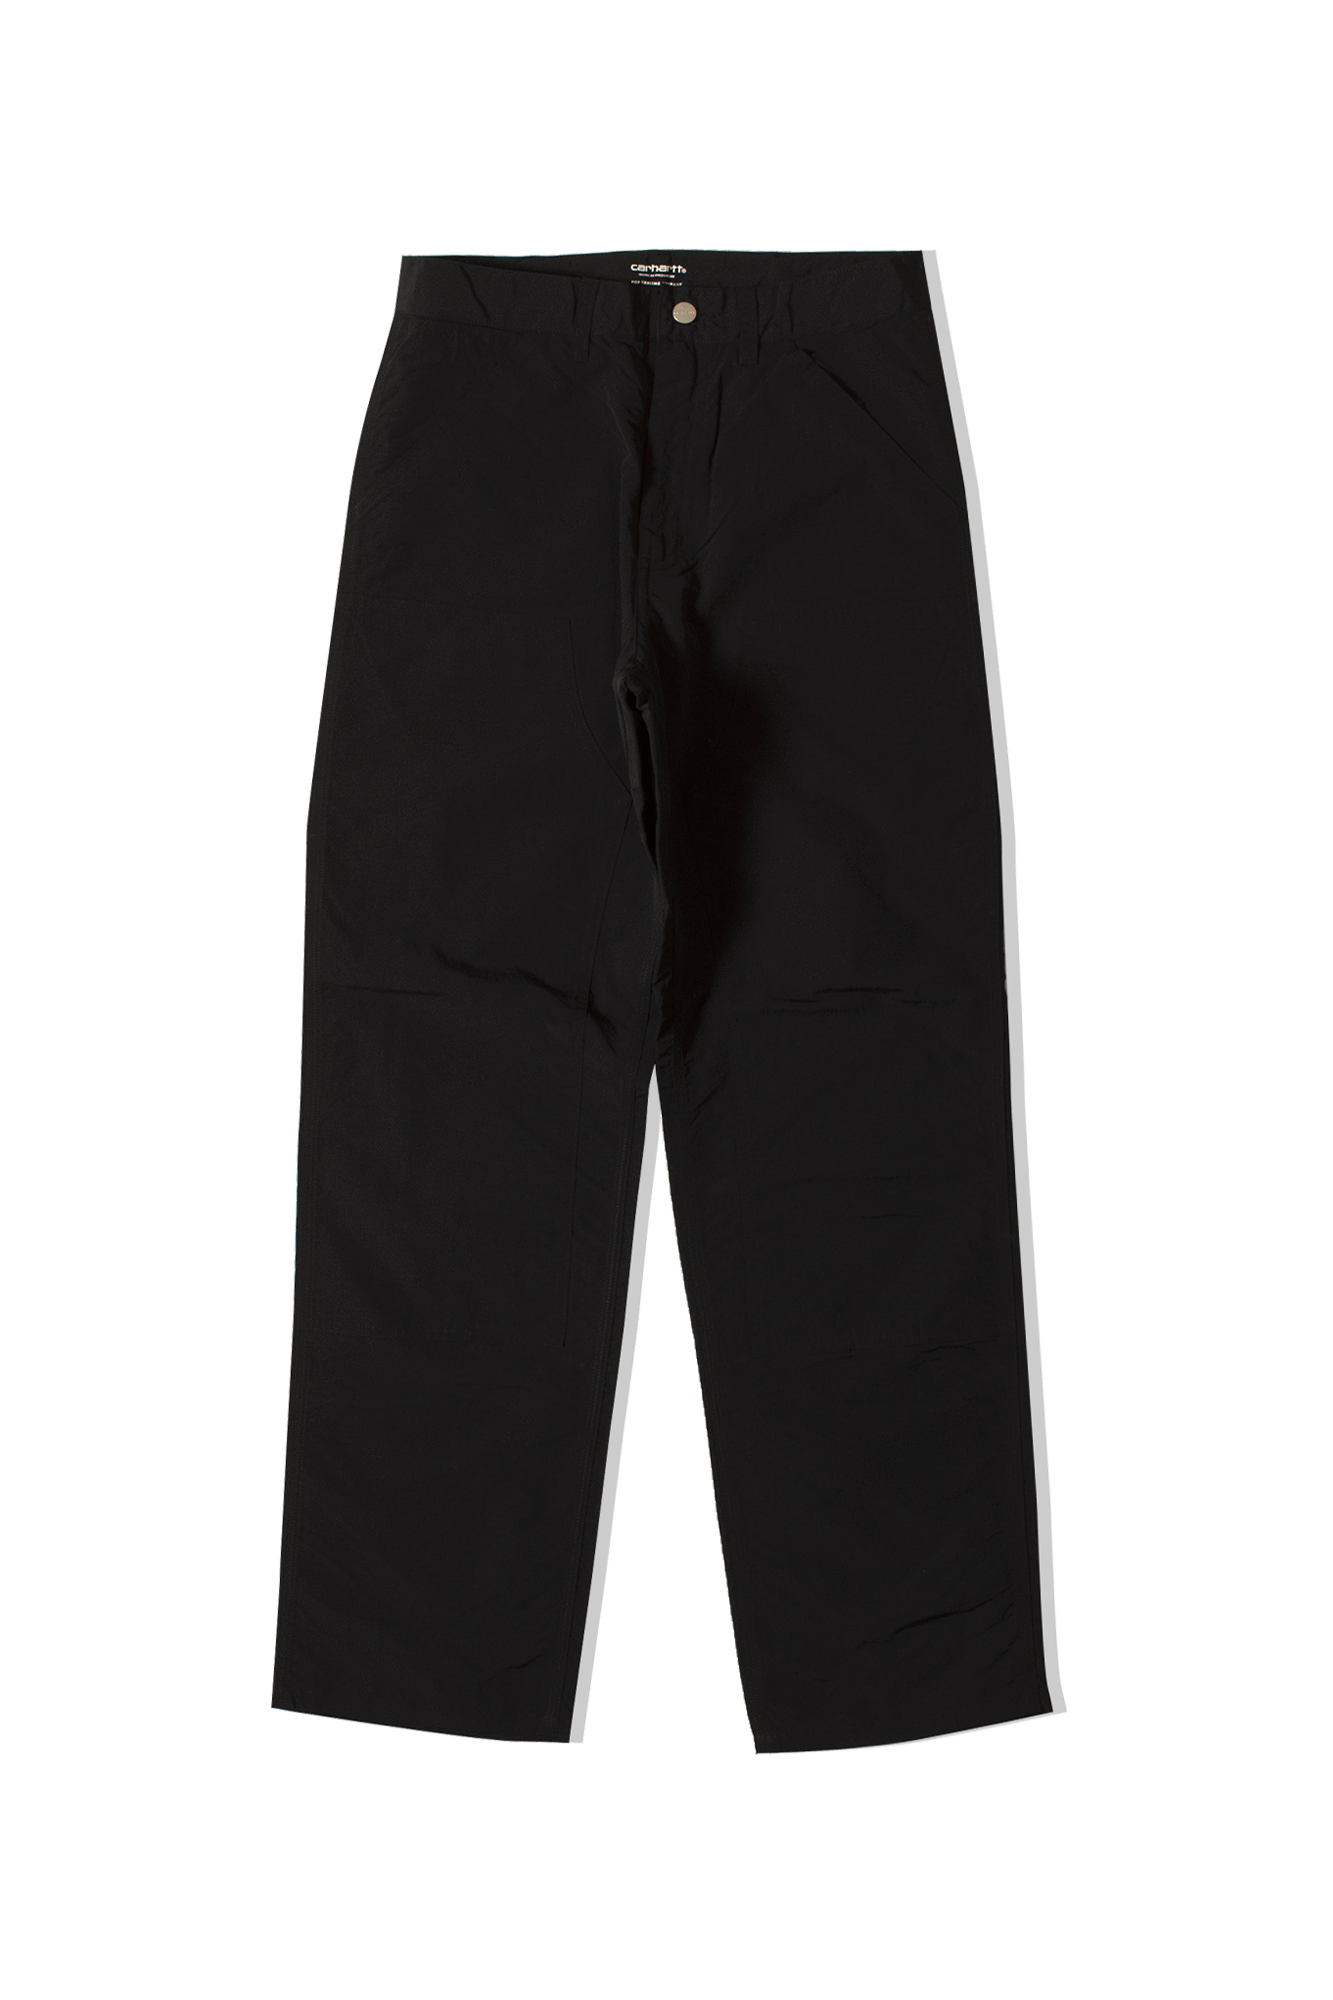 Double Knee Pants x Carhartt Nero